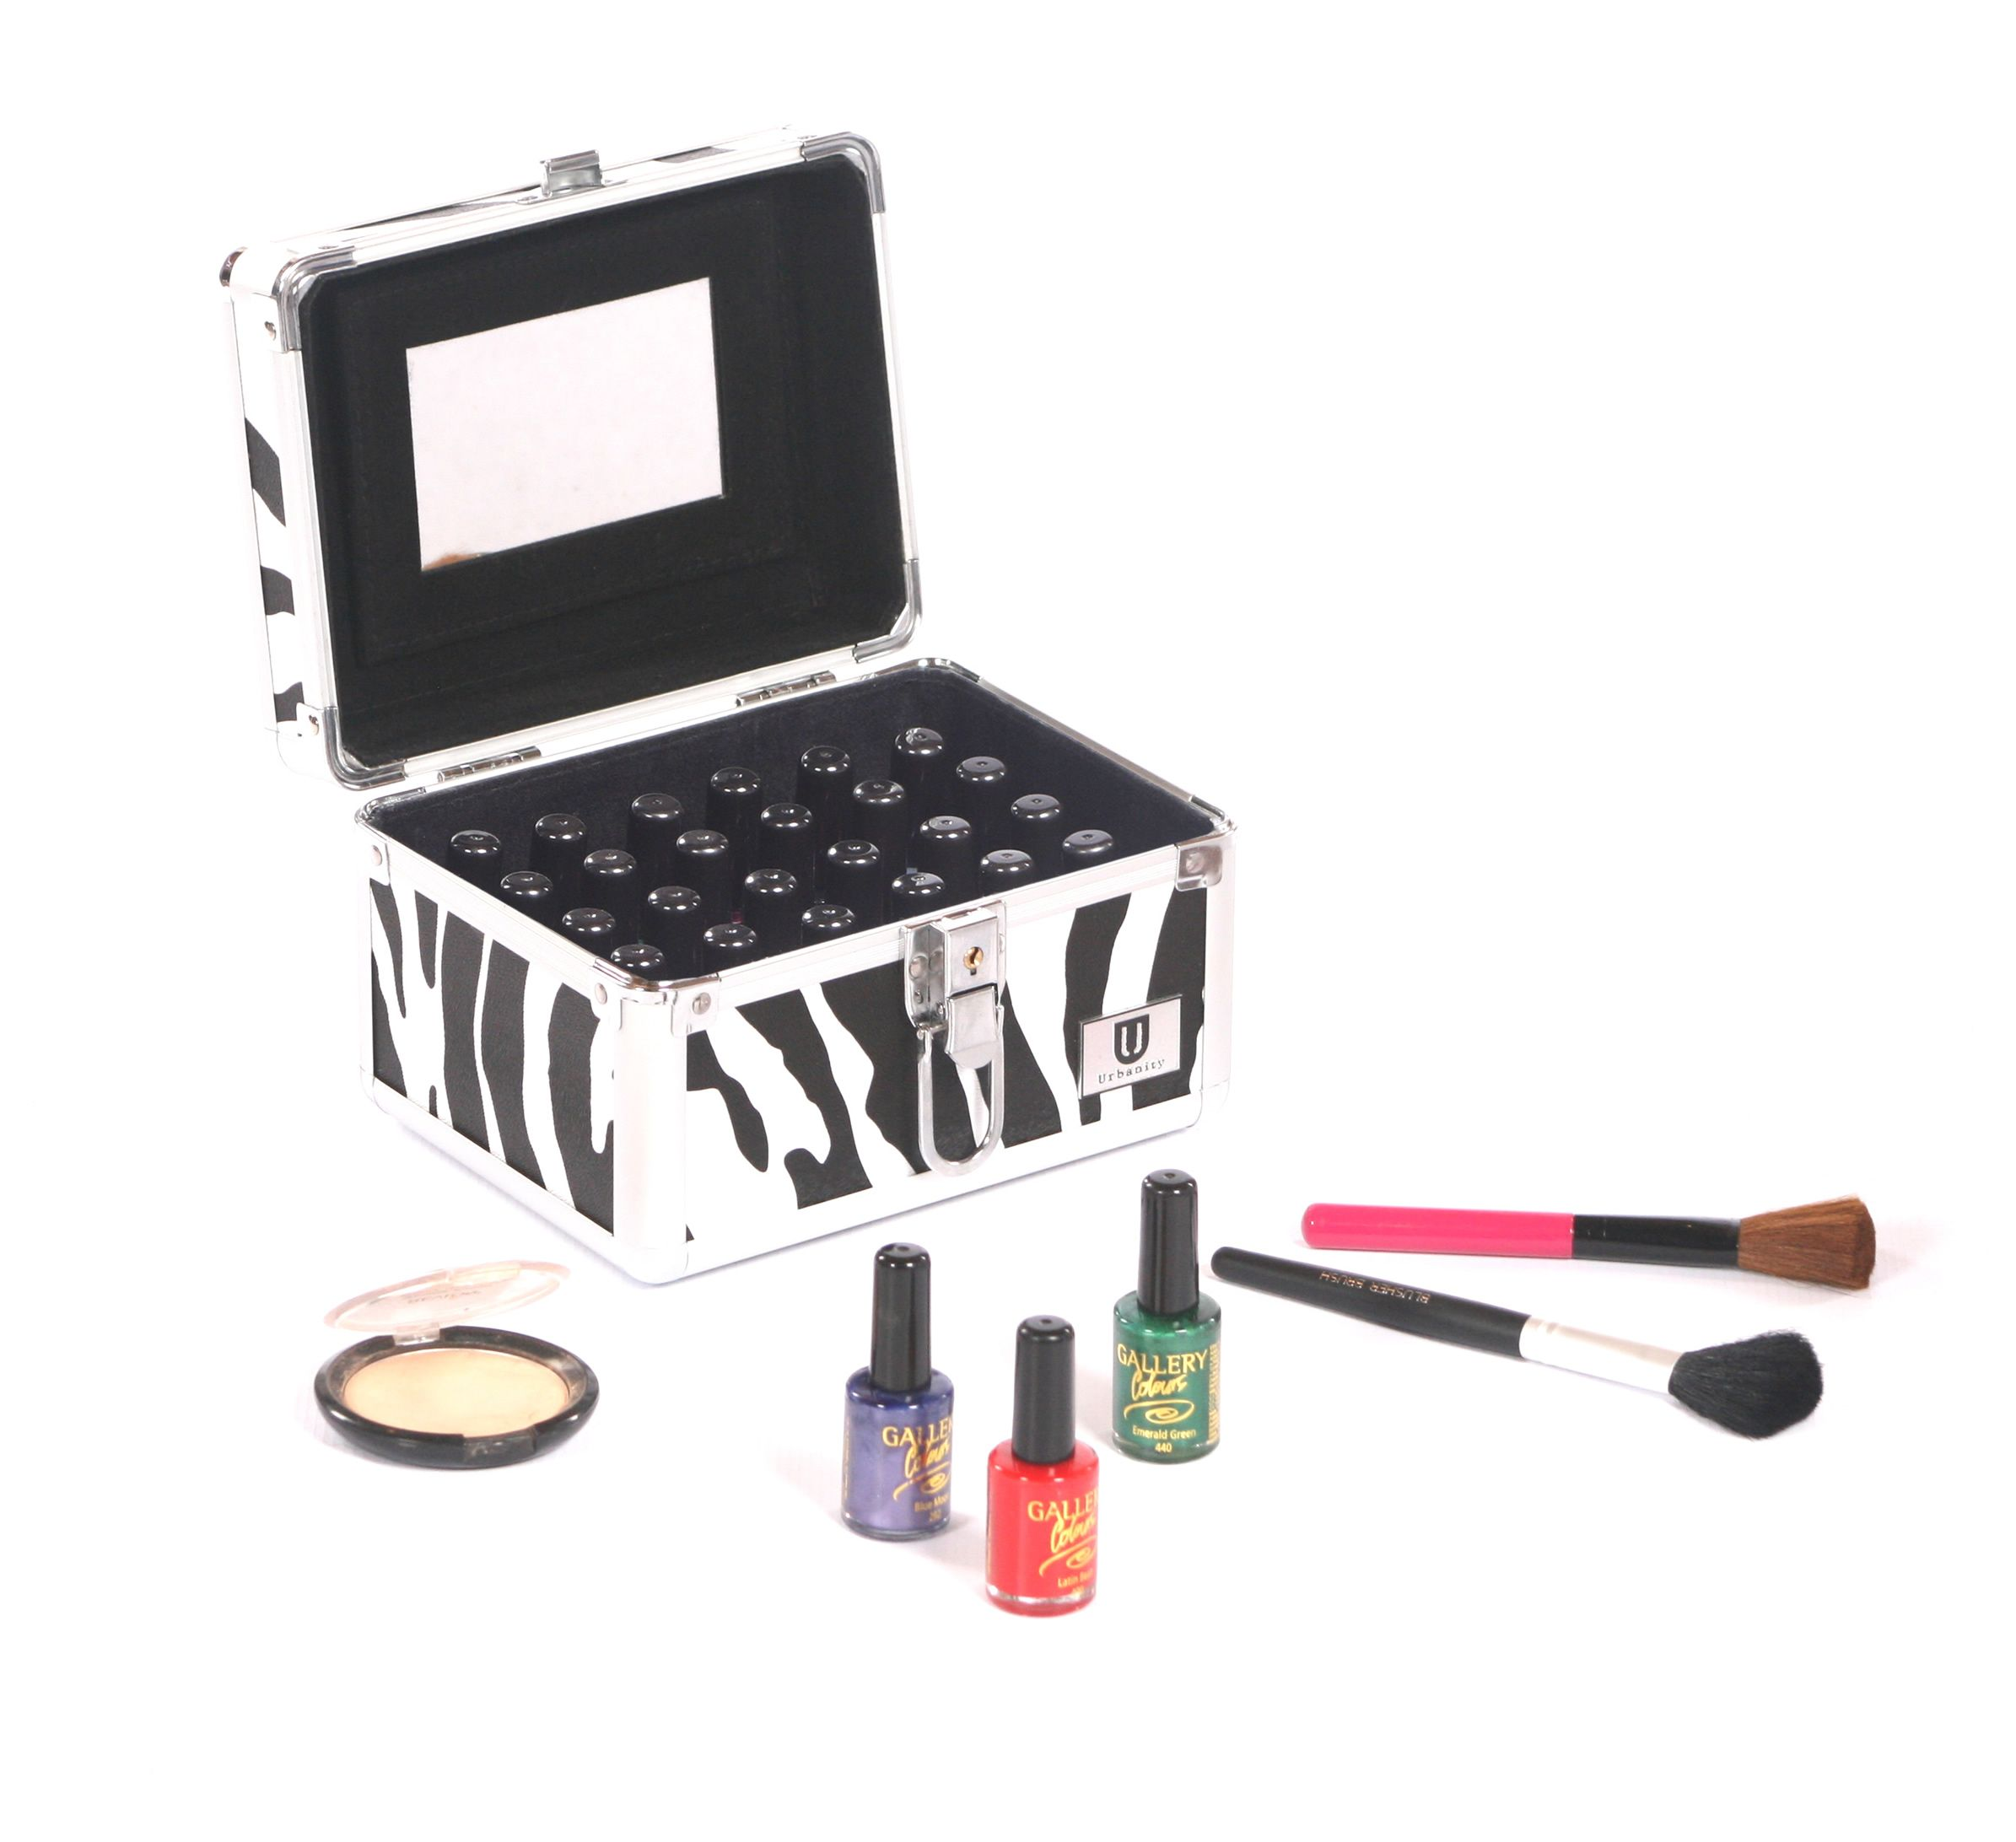 Urbanity Glamour Case - the perfect makeup box. Get yours at http://